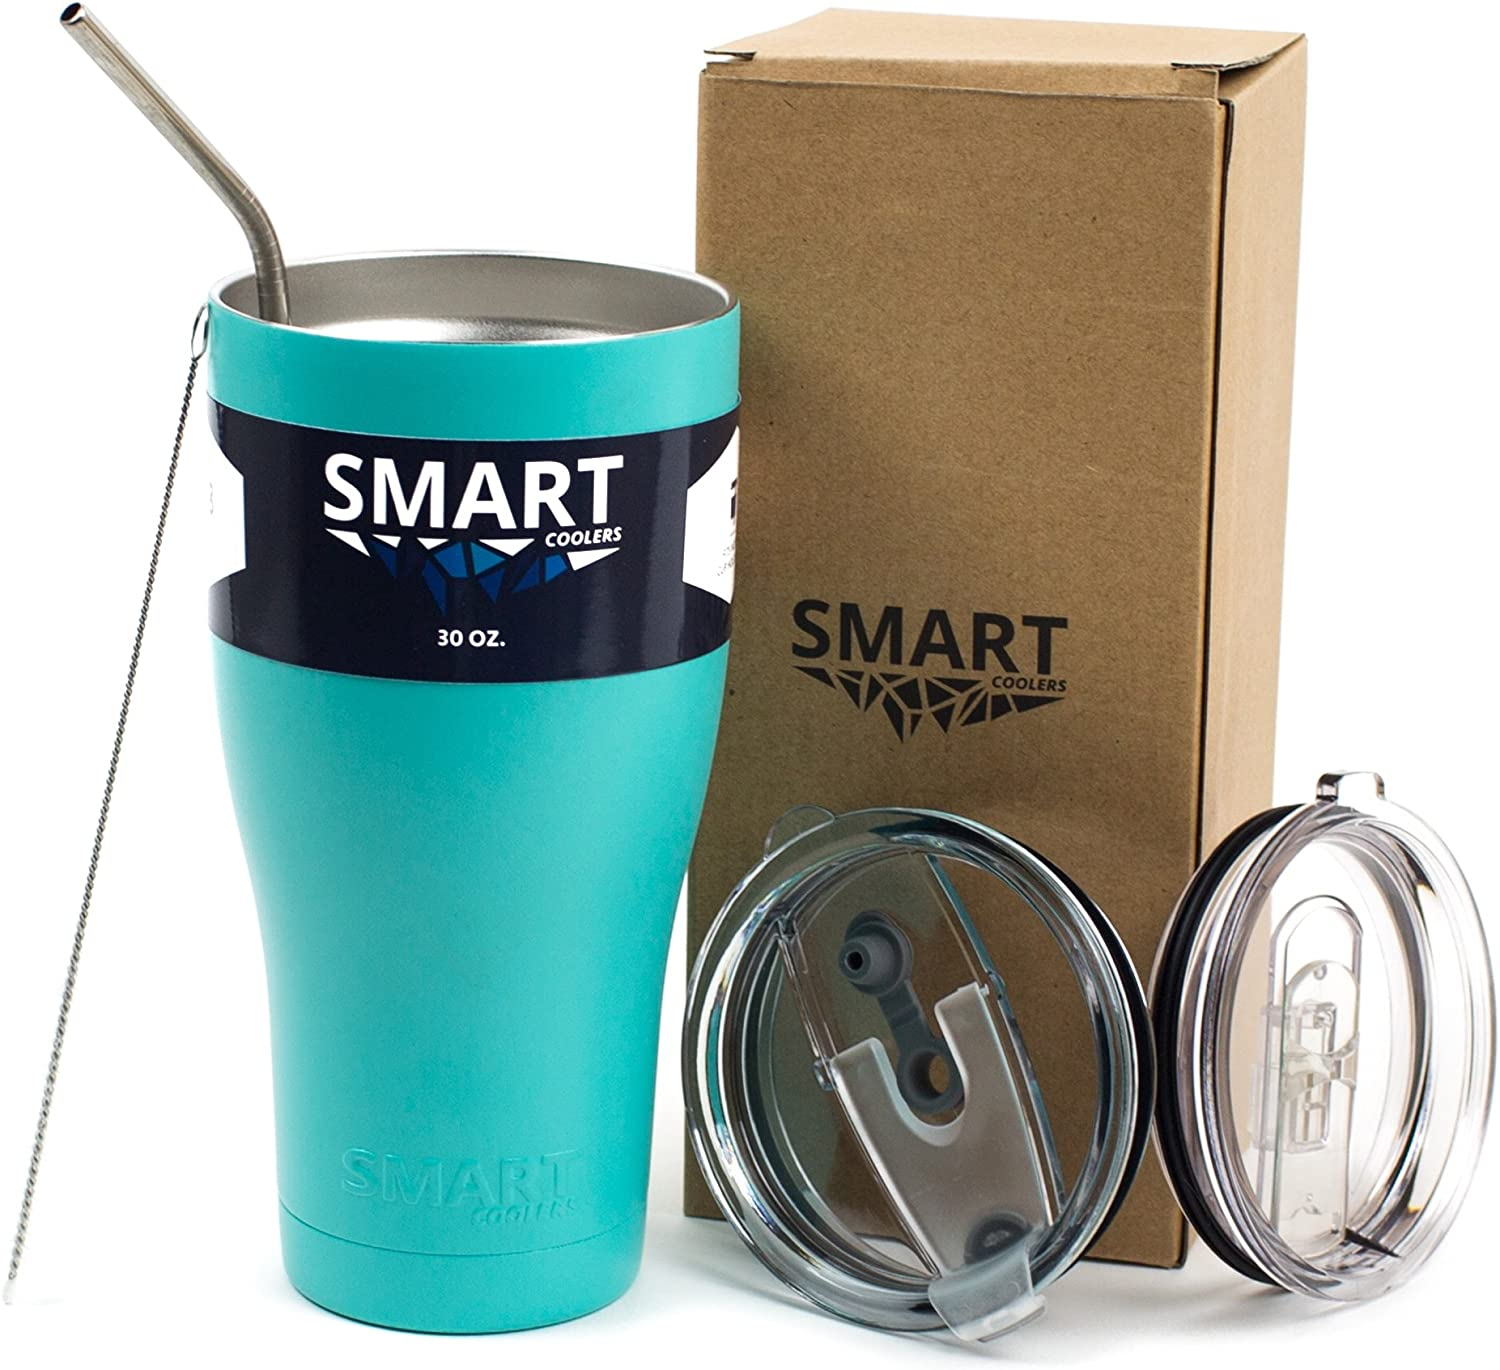 Tumbler 30 Oz Smart Cup Color - Ultra-Tough Double Wall Stainless Steel - Beast Style - Premium Insulated Mug - Powder Coated - Leak-Proof, Sliding Lid, Straw, Brush & Gift Box - Teal